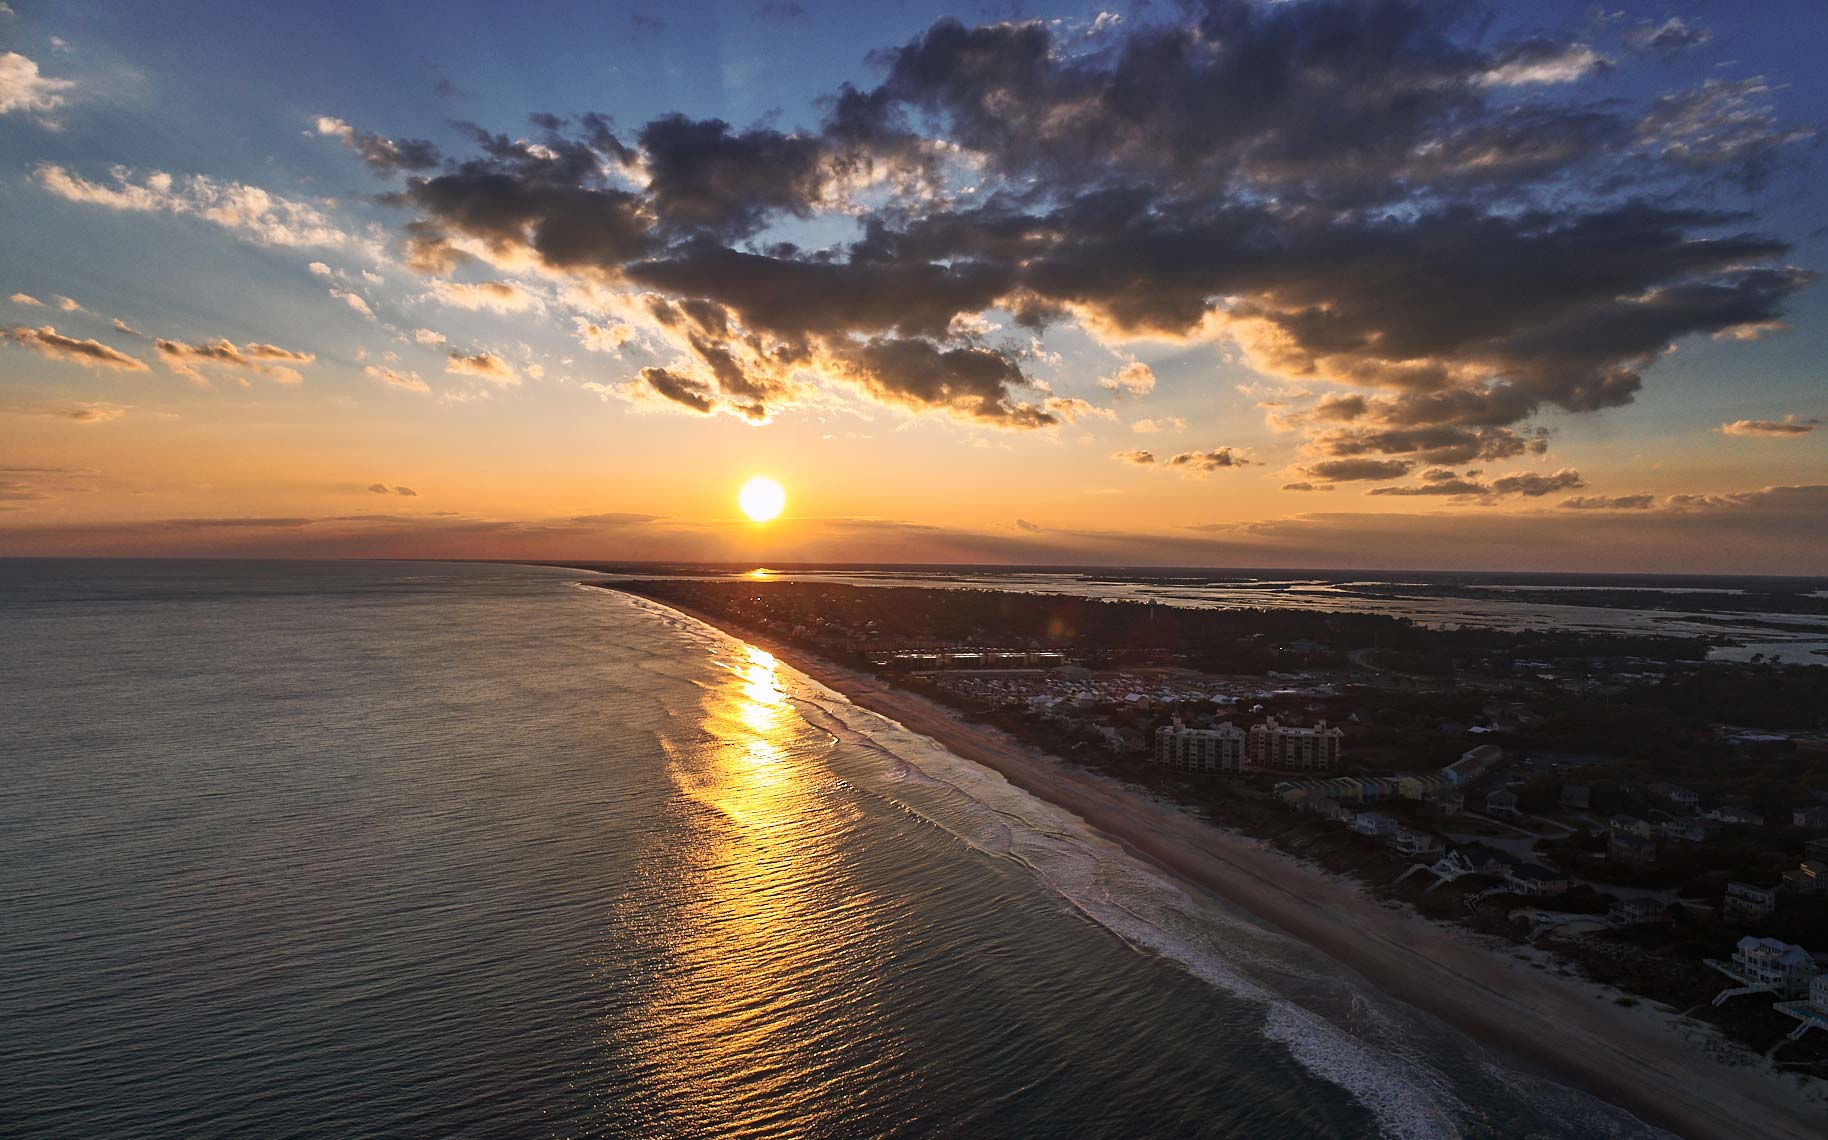 Emerald Isle Sunset, Emerald Isle, North Carolina